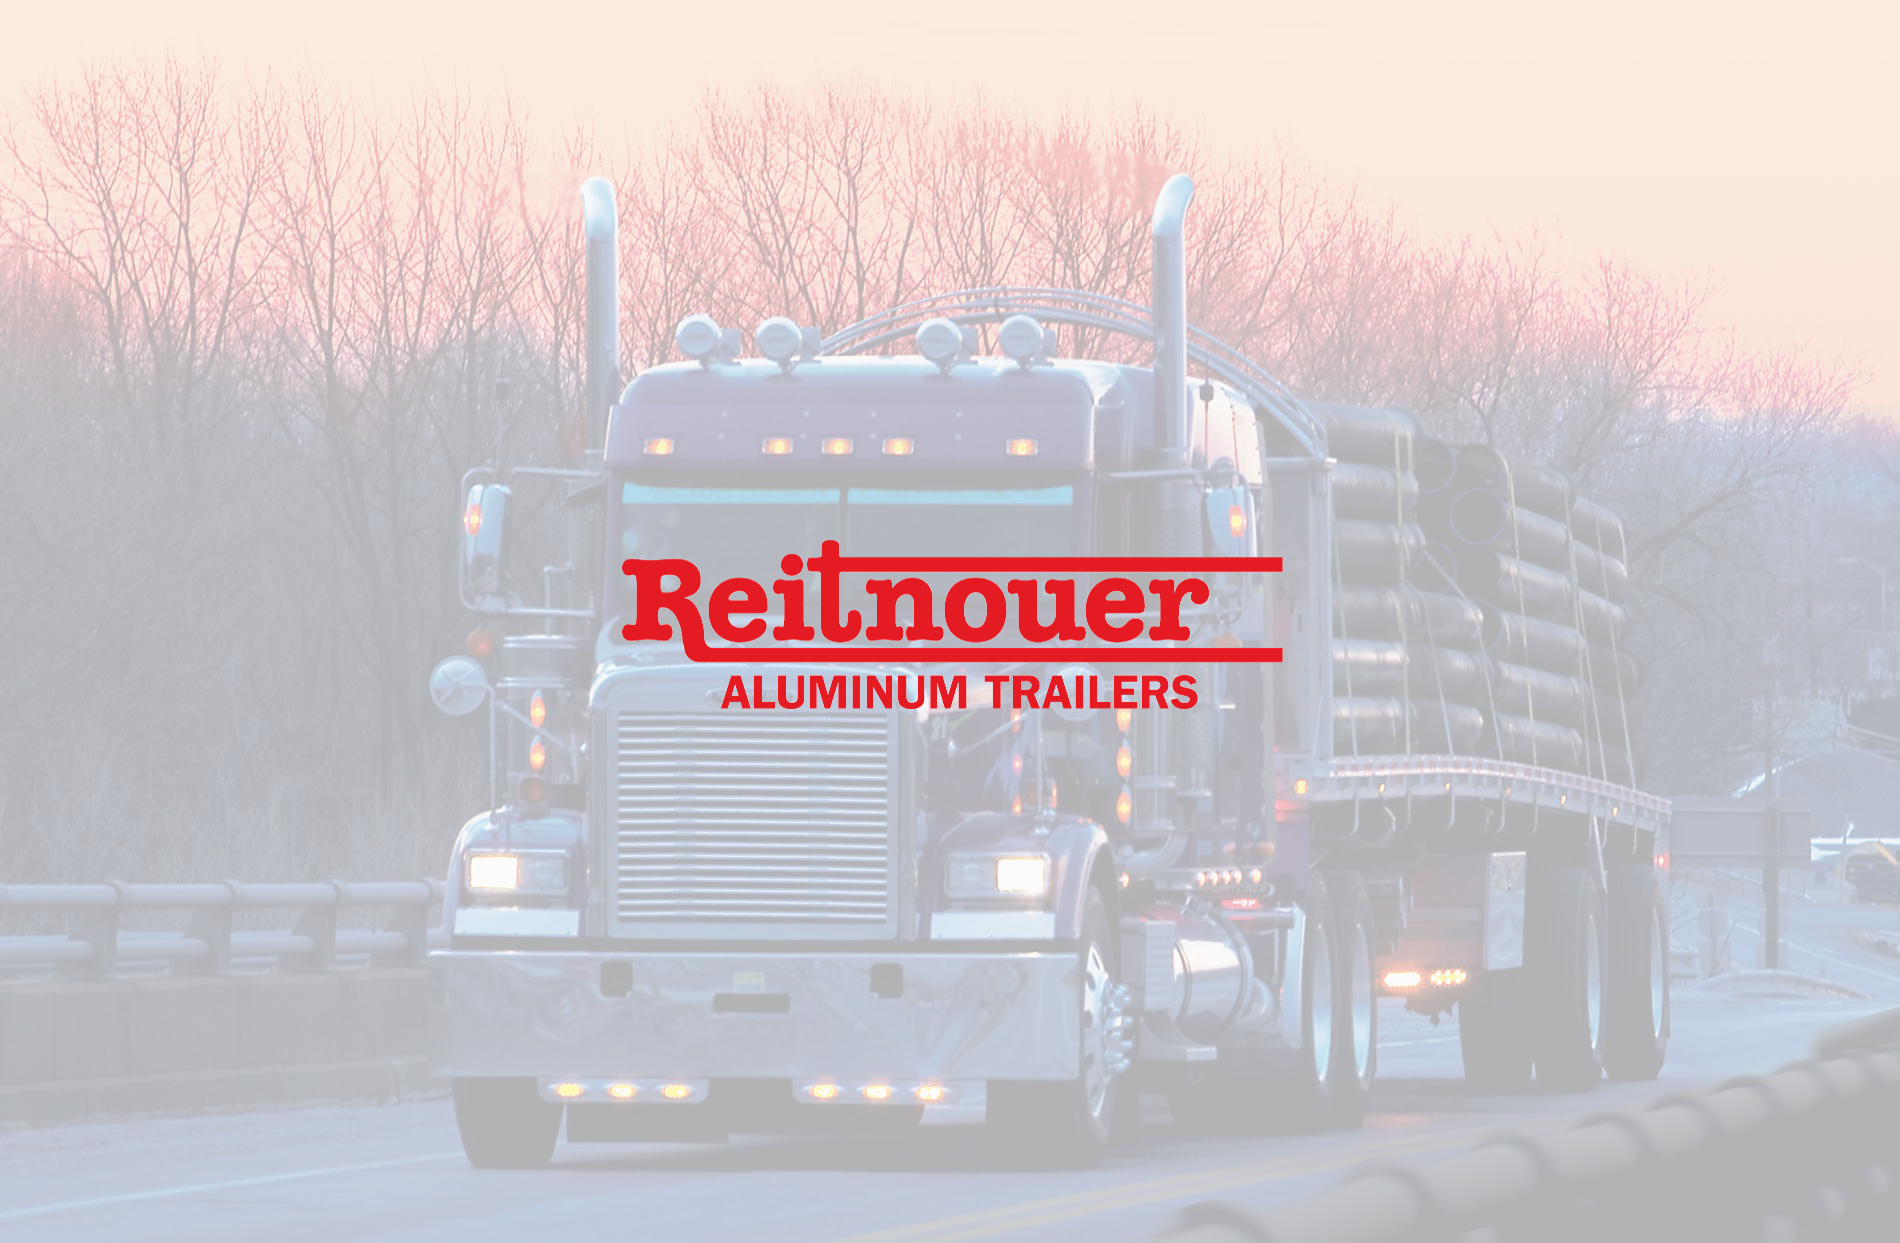 Home Reitnouer Trailers Tank Truck Manufacturer Air Schematic